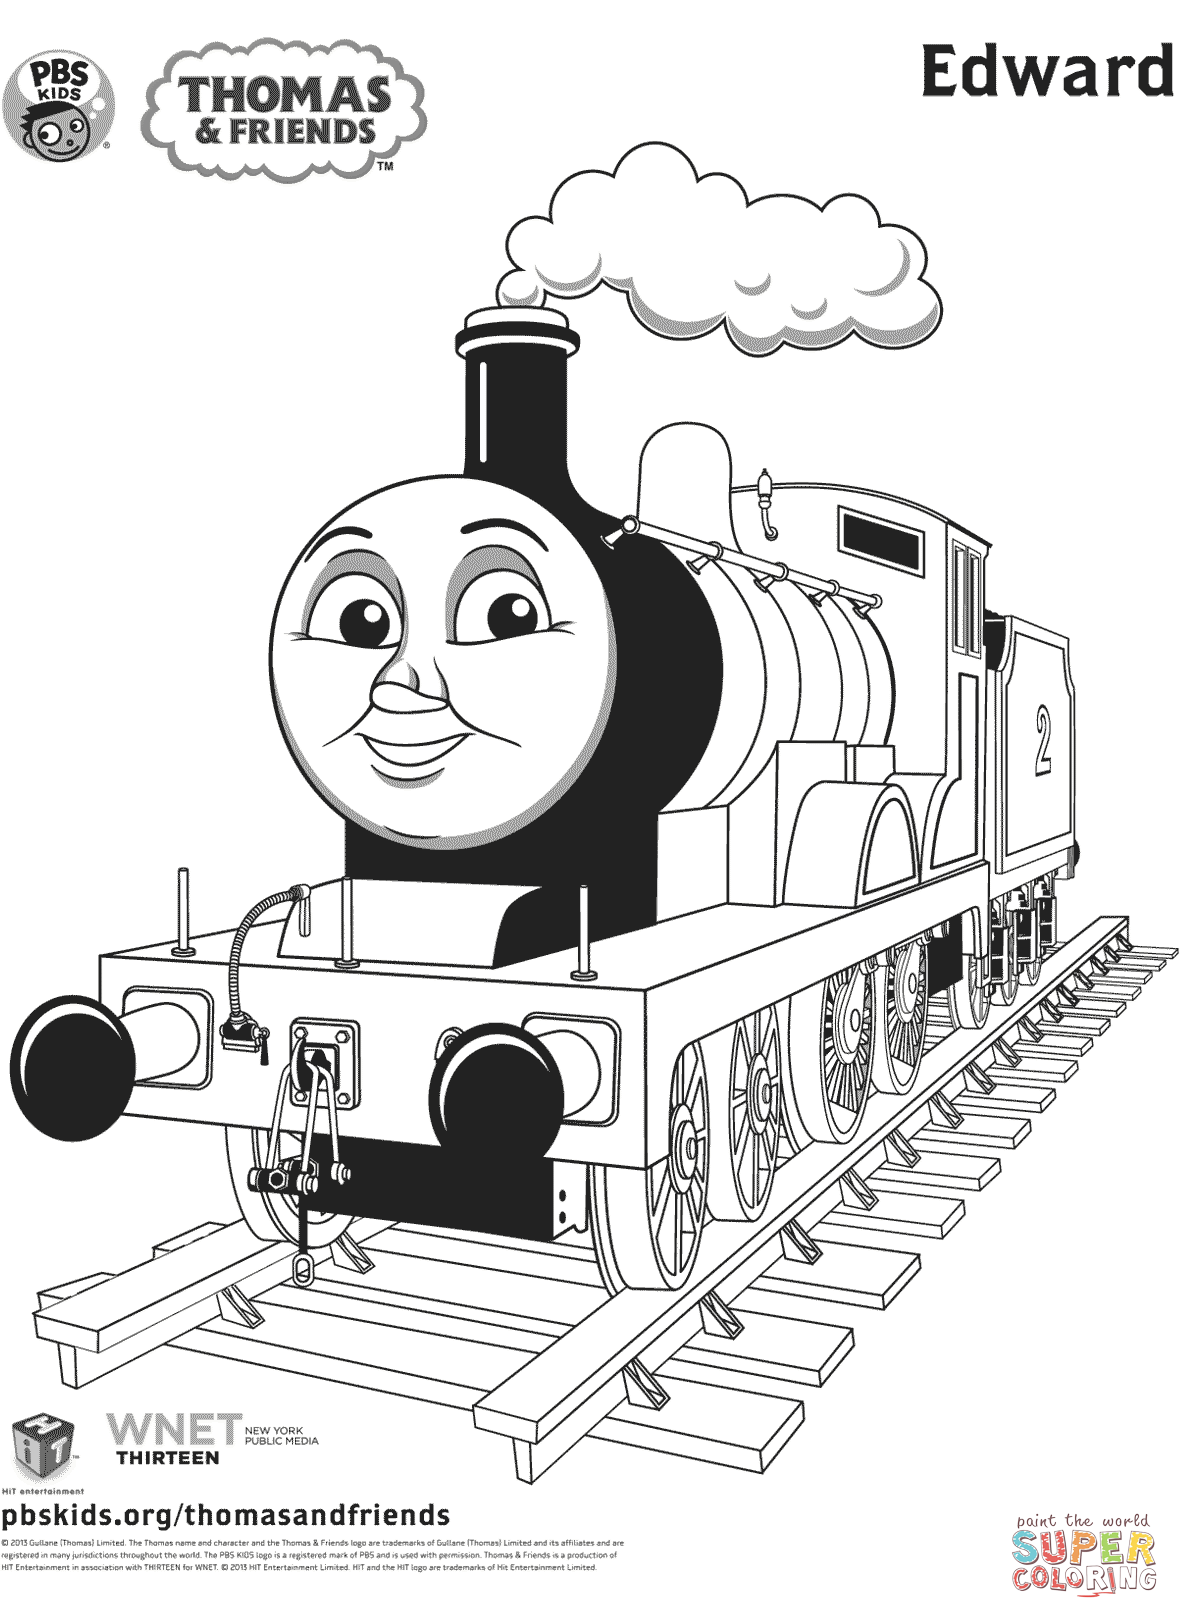 thomas and friends coloring pages edward thomas and friends coloring pages coloring pages coloring thomas pages and friends